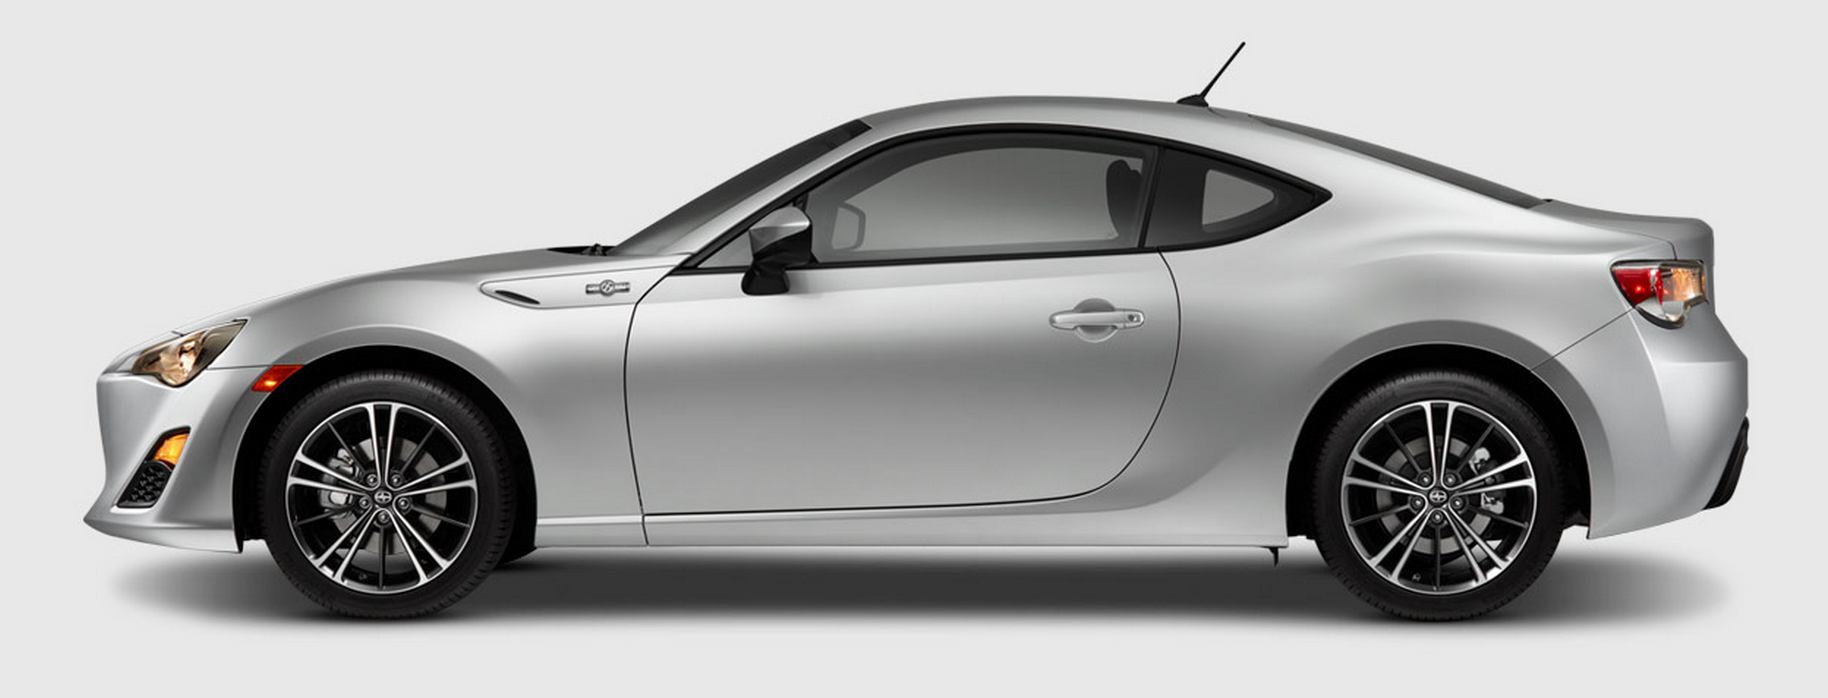 Scion Frs 0 60 Specs